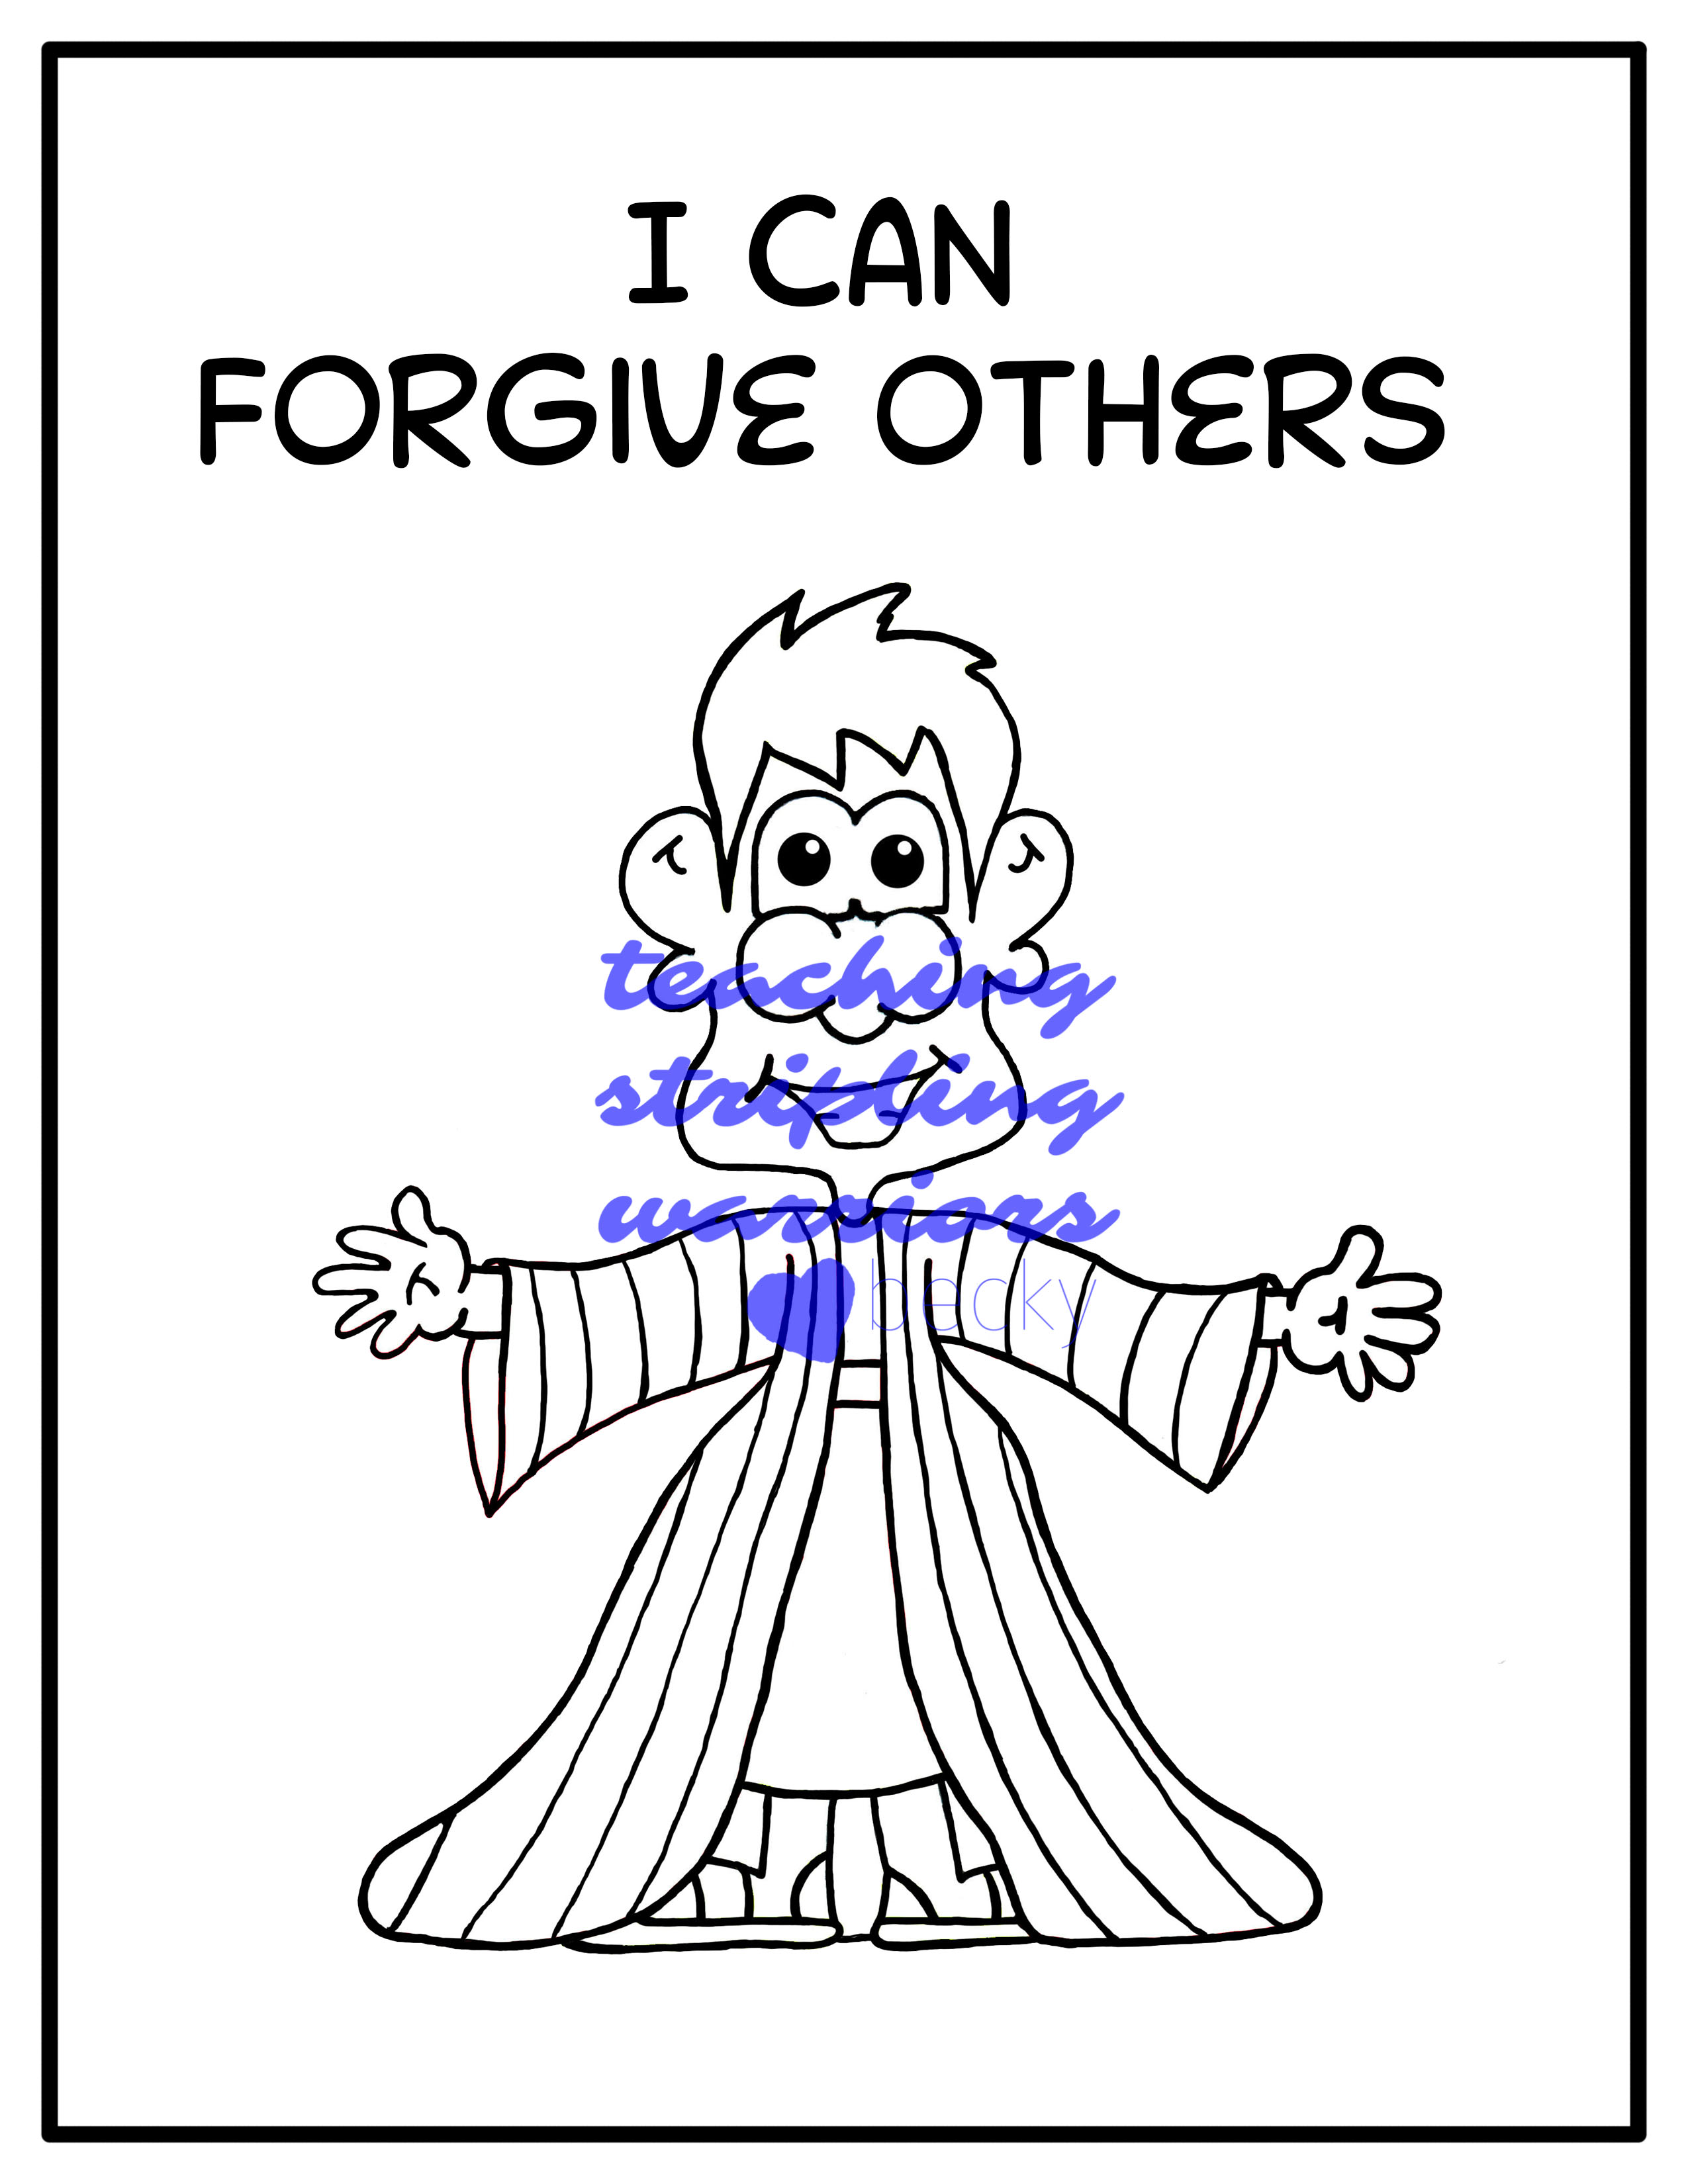 Lesson 30: I Can Forgive Others